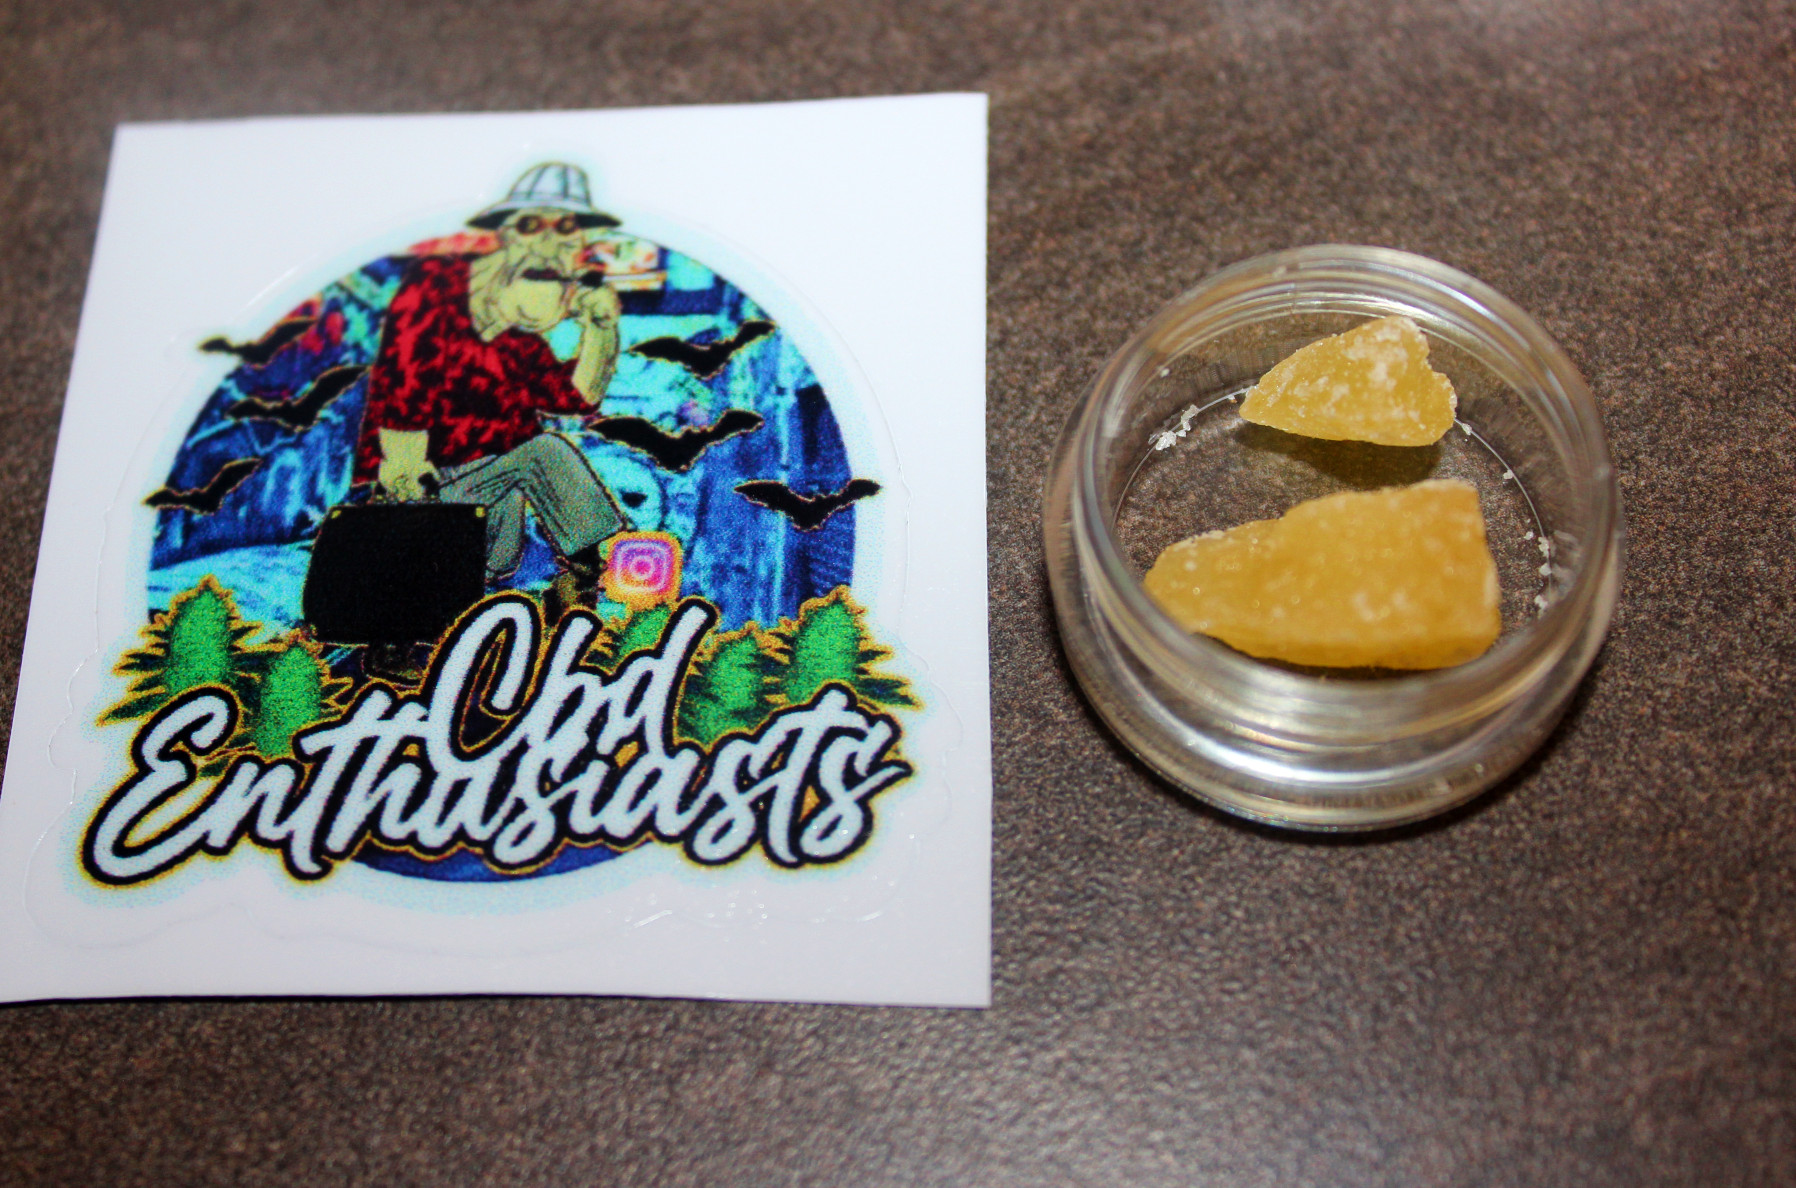 CBD Enthusiasts - Dog Walker OG Terpene Infused 90% CBD Crumble Review